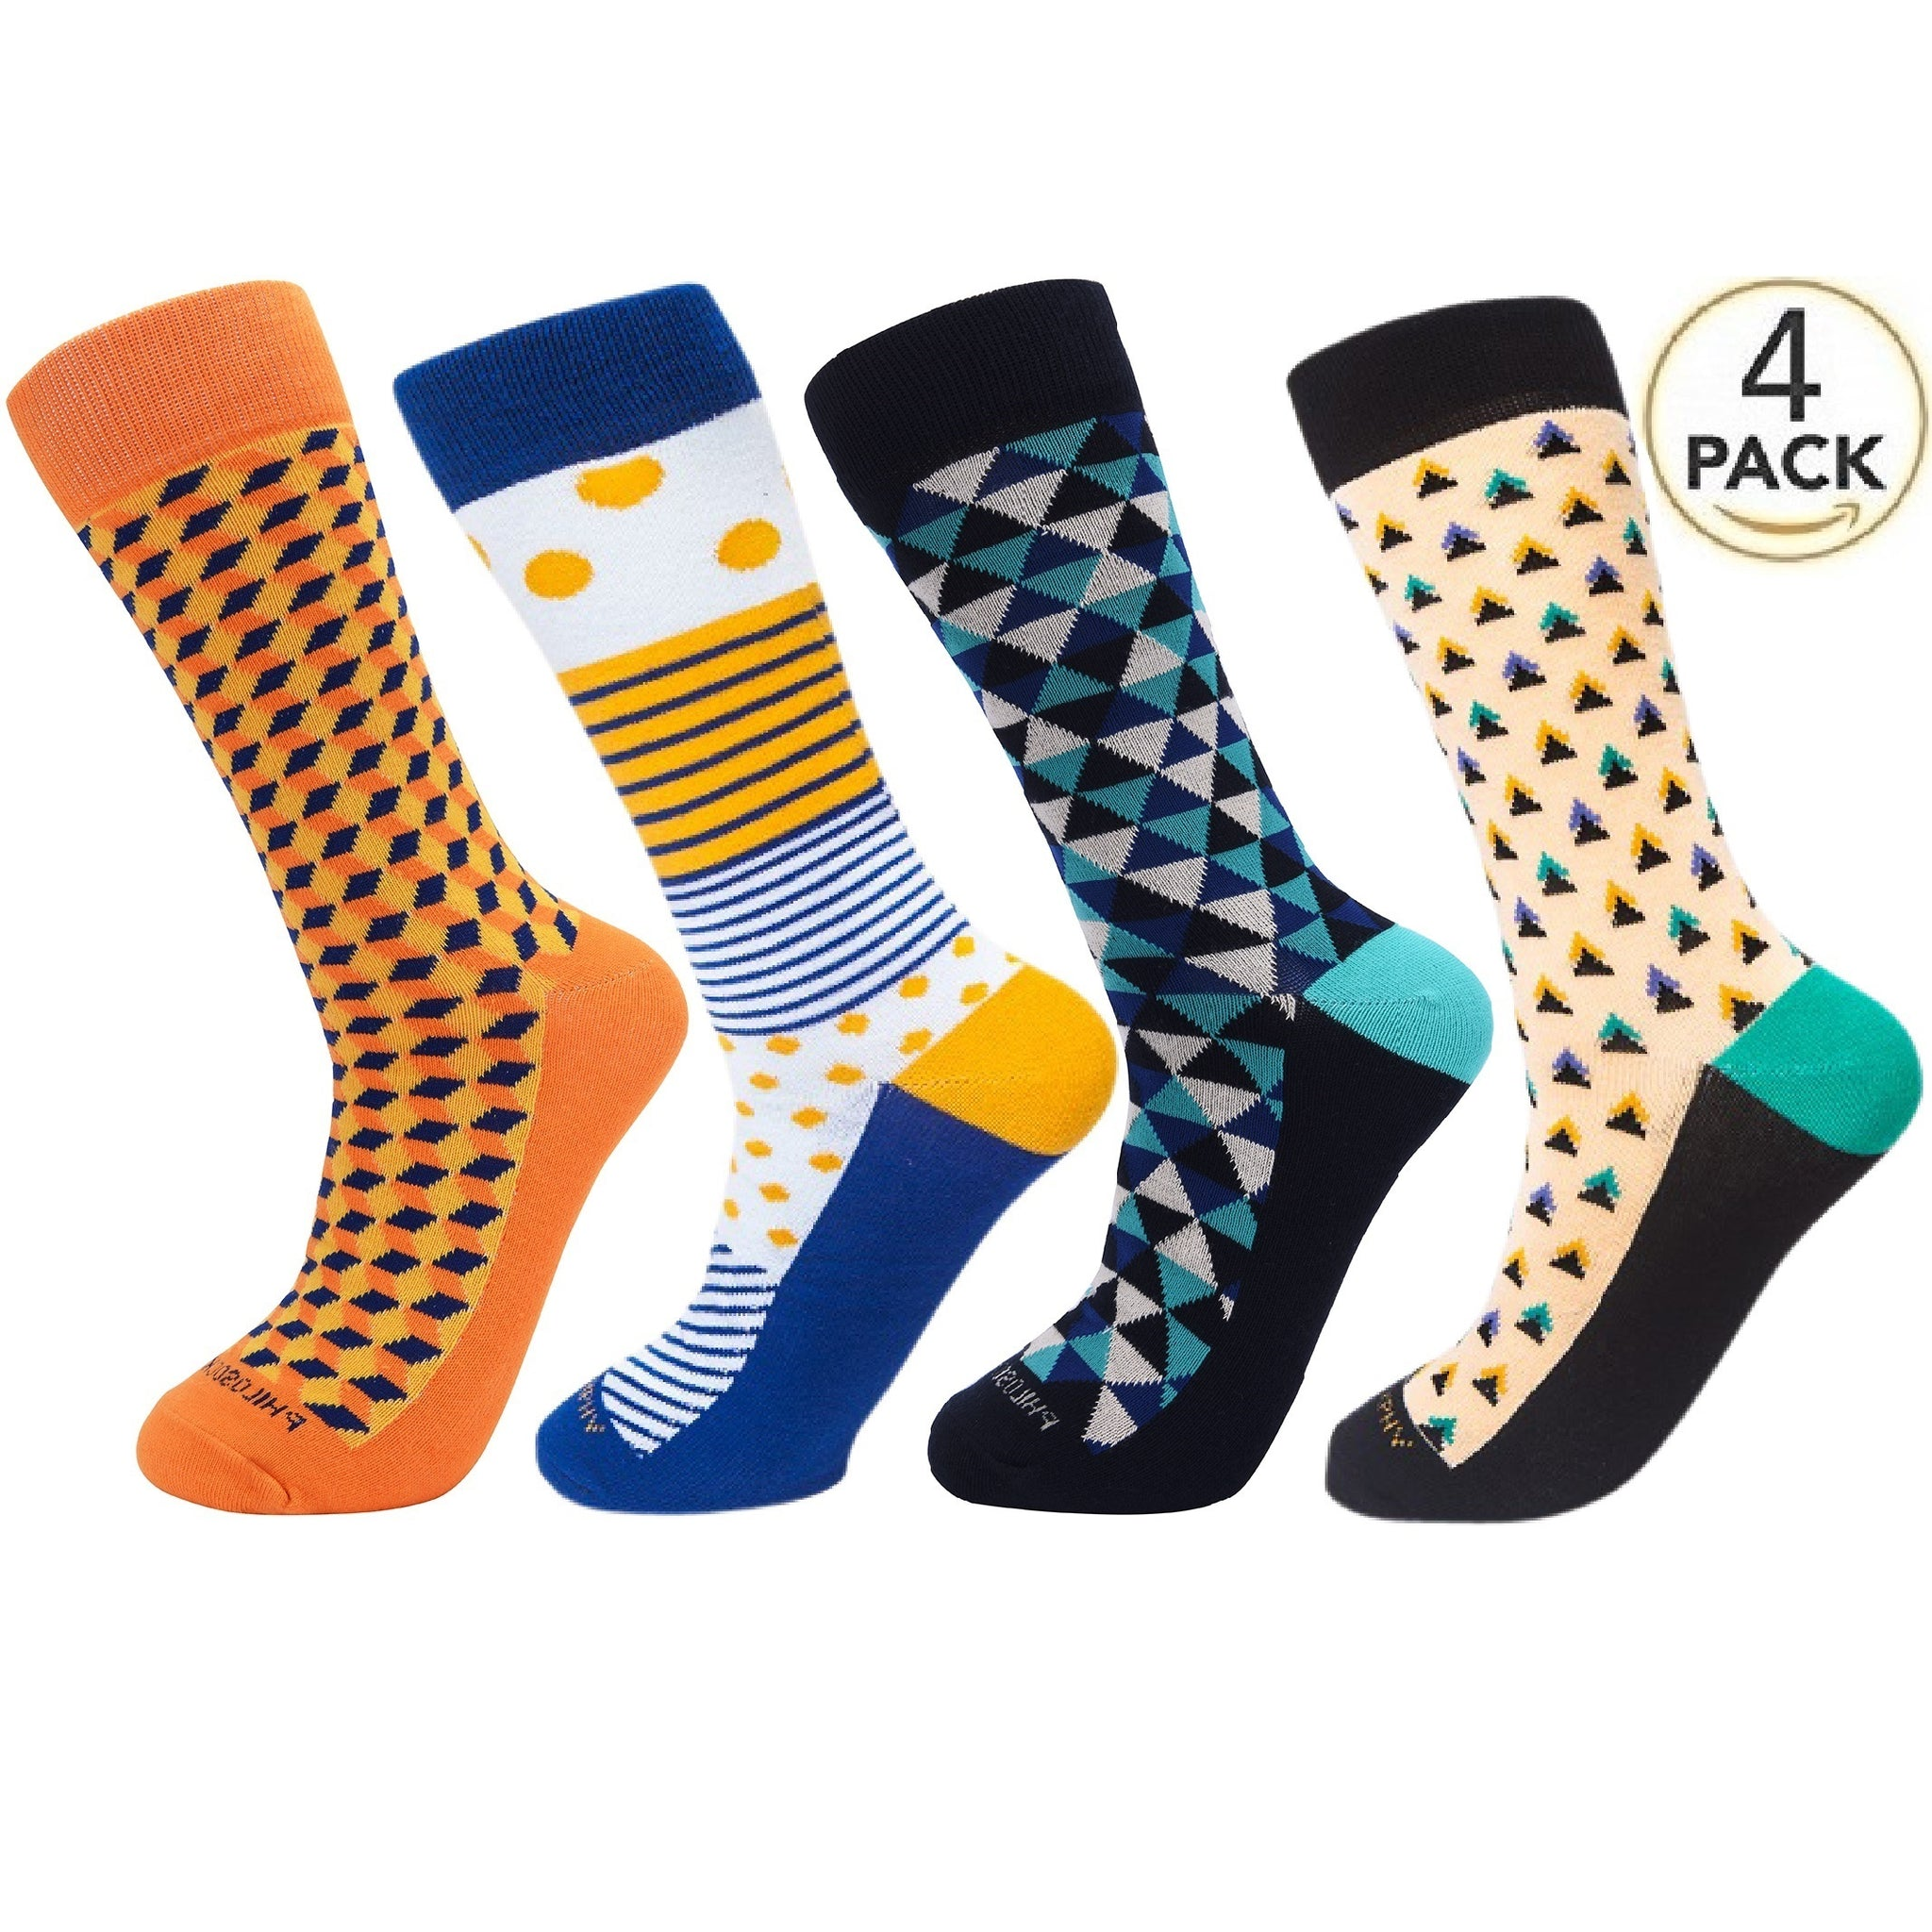 Assorted Socks (4 Pairs) - New Designs #7